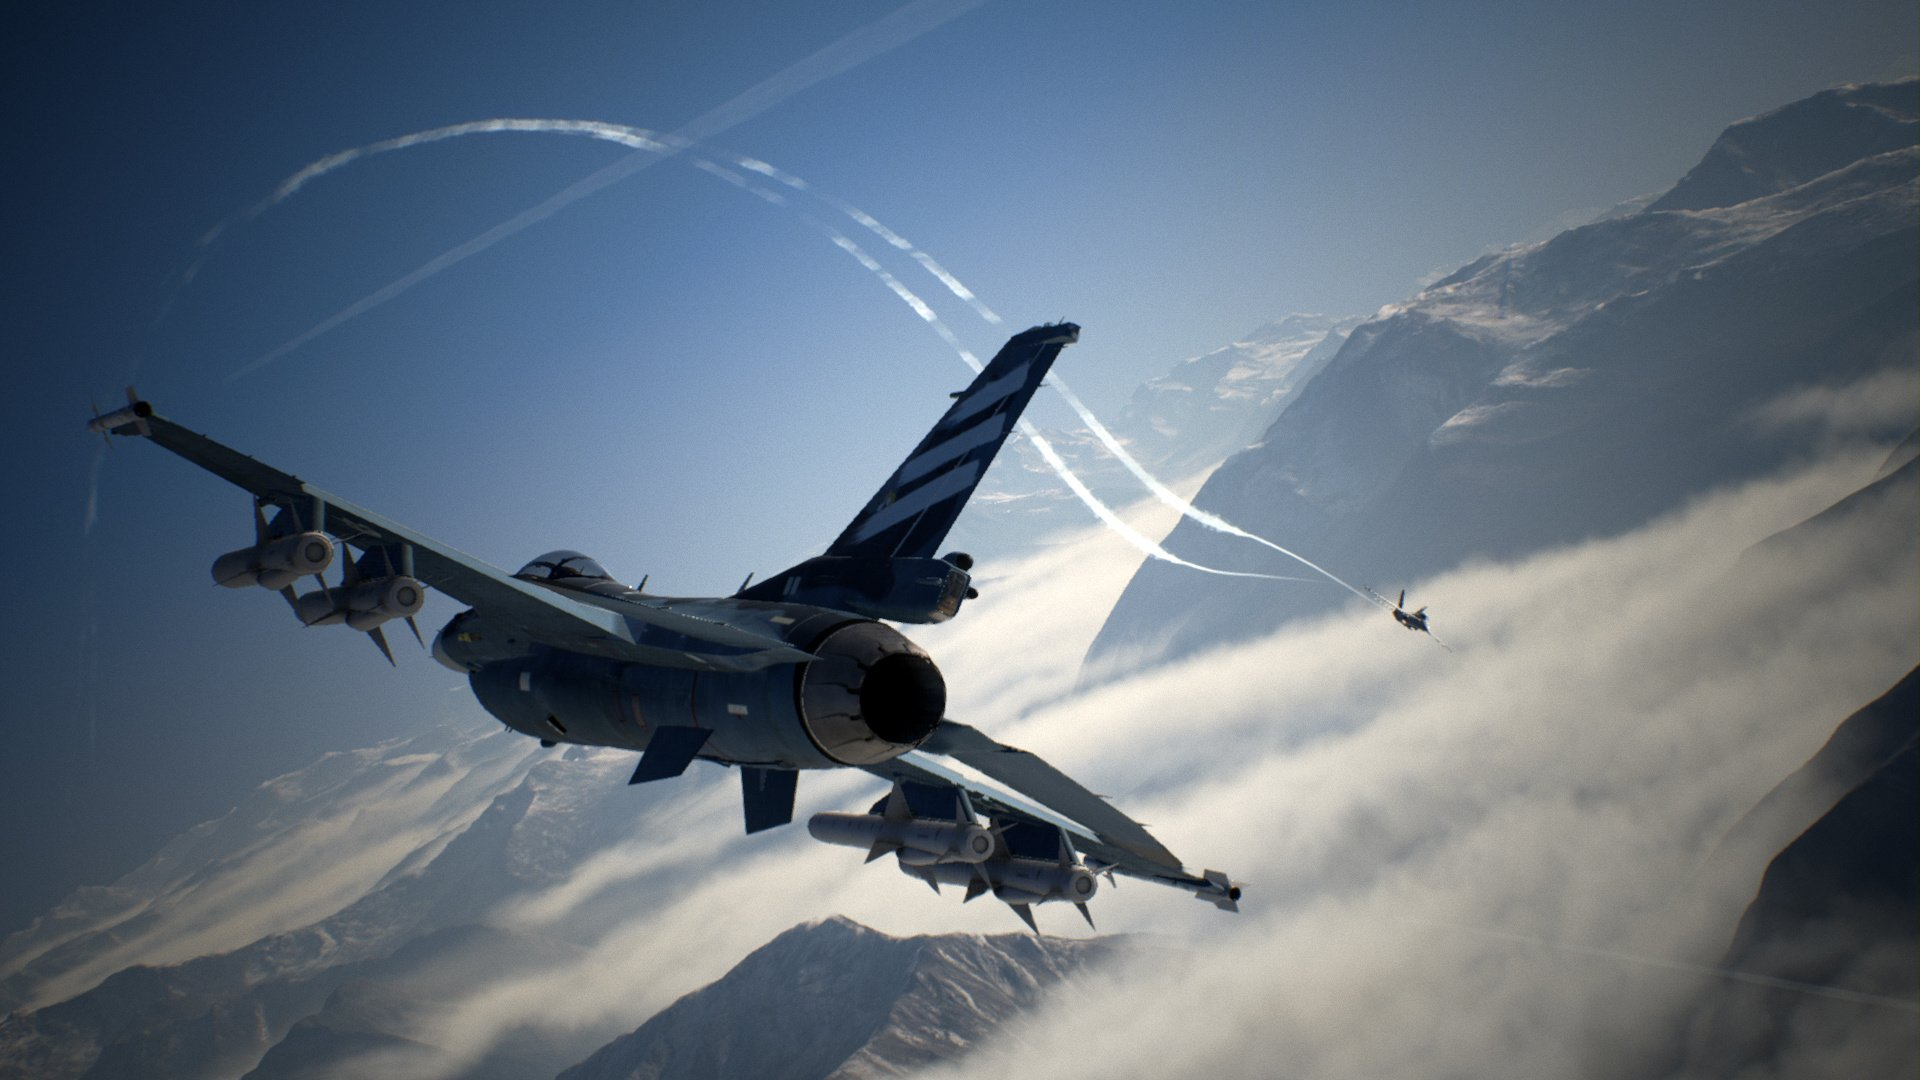 Ace Combat 7: Skies Unknown - Tips and Tricks for Beginners